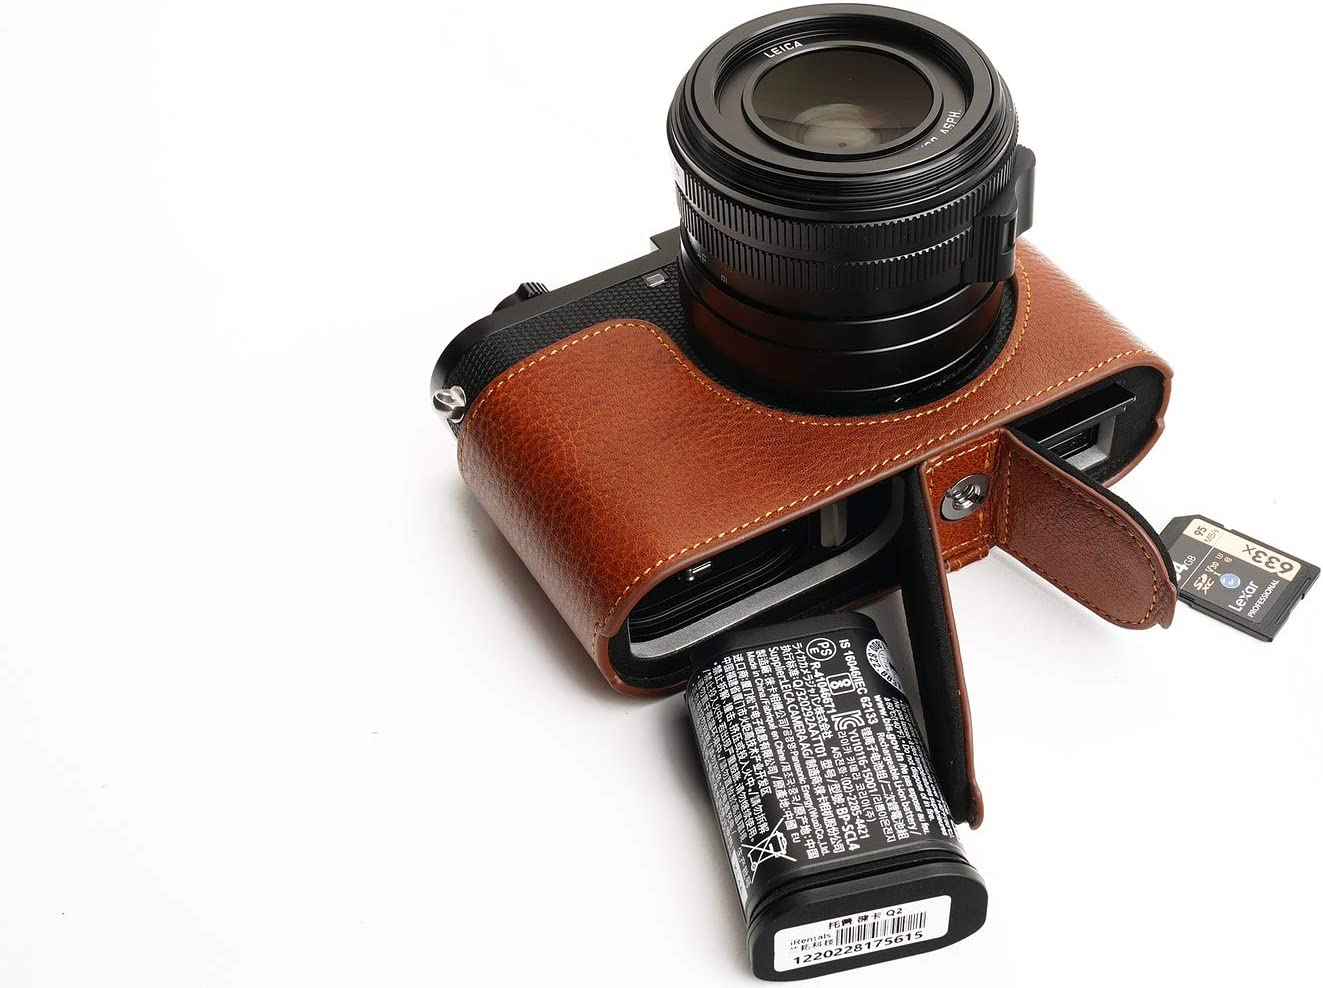 Handmade Genuine Real Leather Half Camera Case Bag Cover for Leica Q2 Black Color